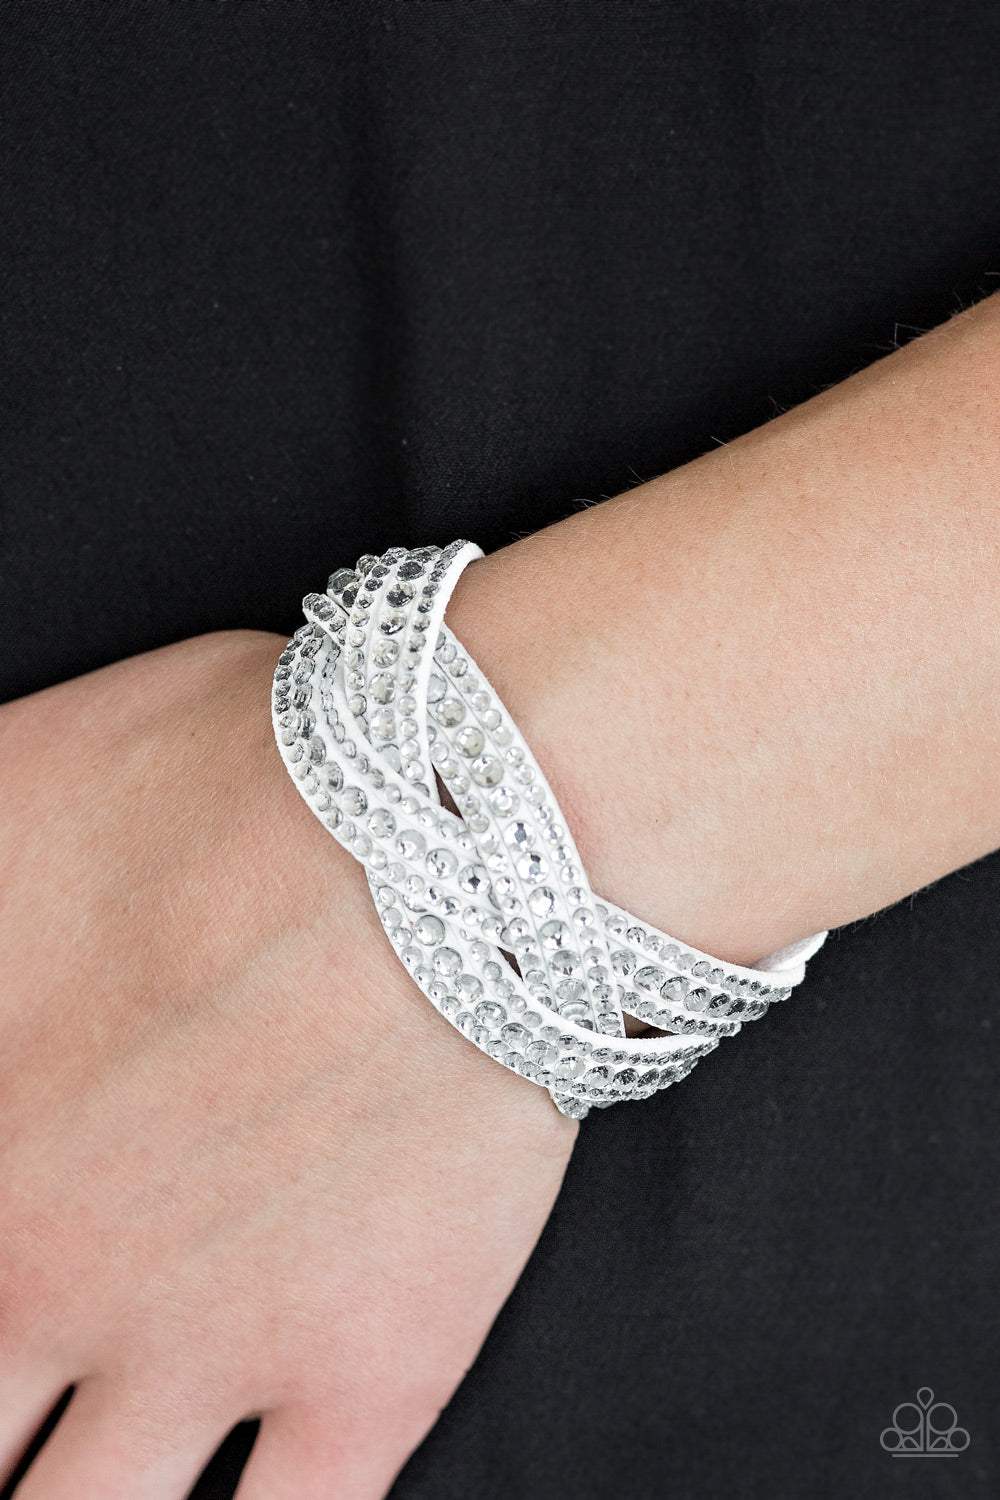 Bring On The Bling - White Paparazzi Bracelet - Pink Dragon Jewels